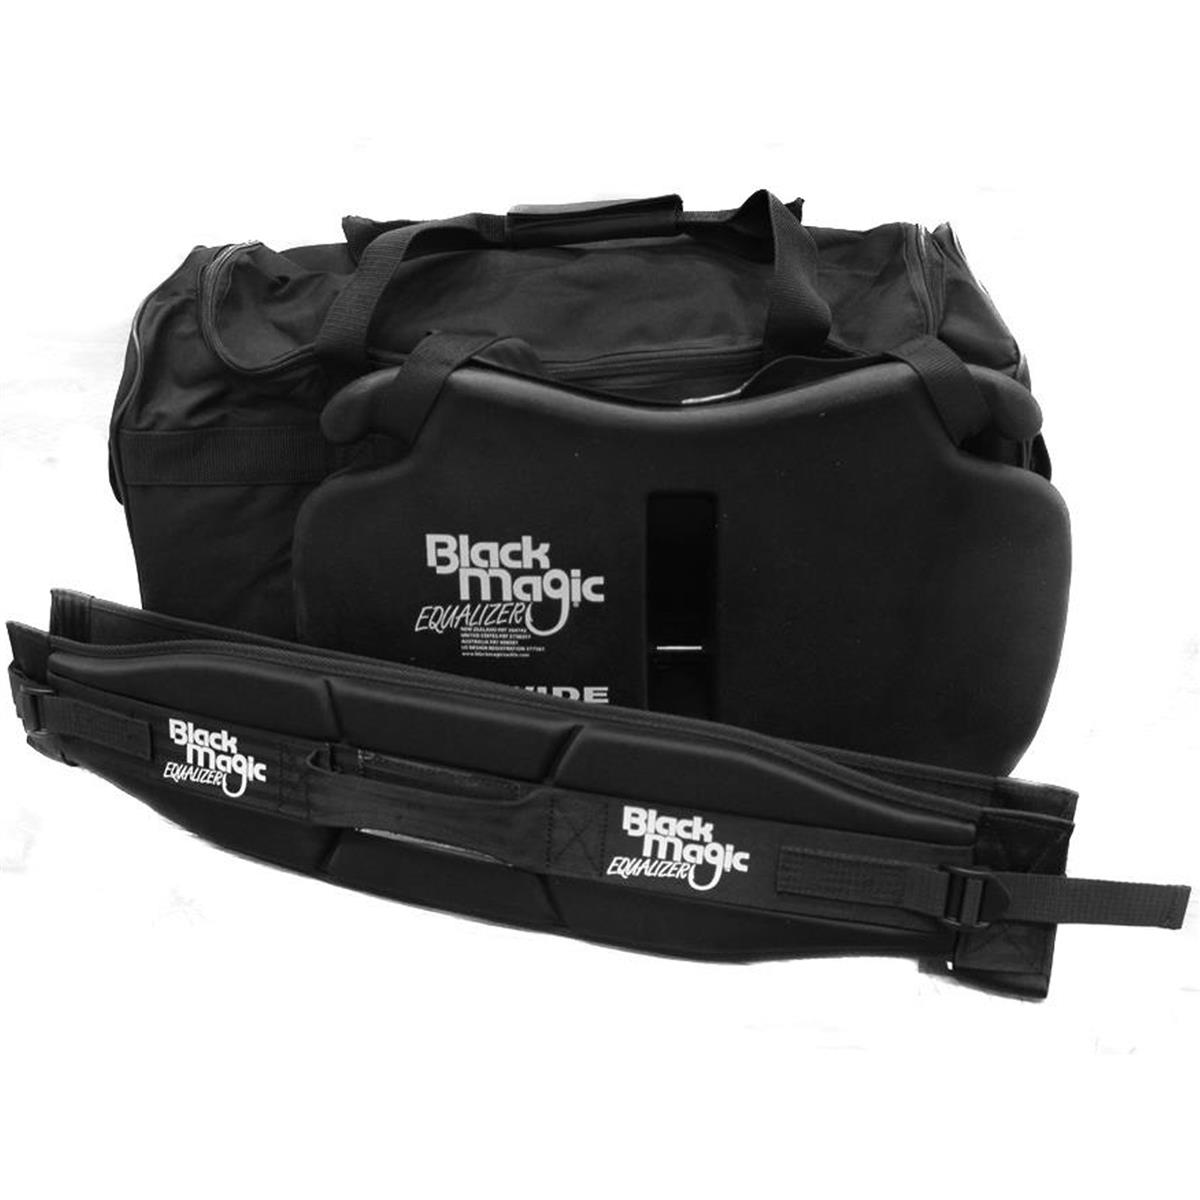 Black Magic Equalizer Set-XL/Std with Bag